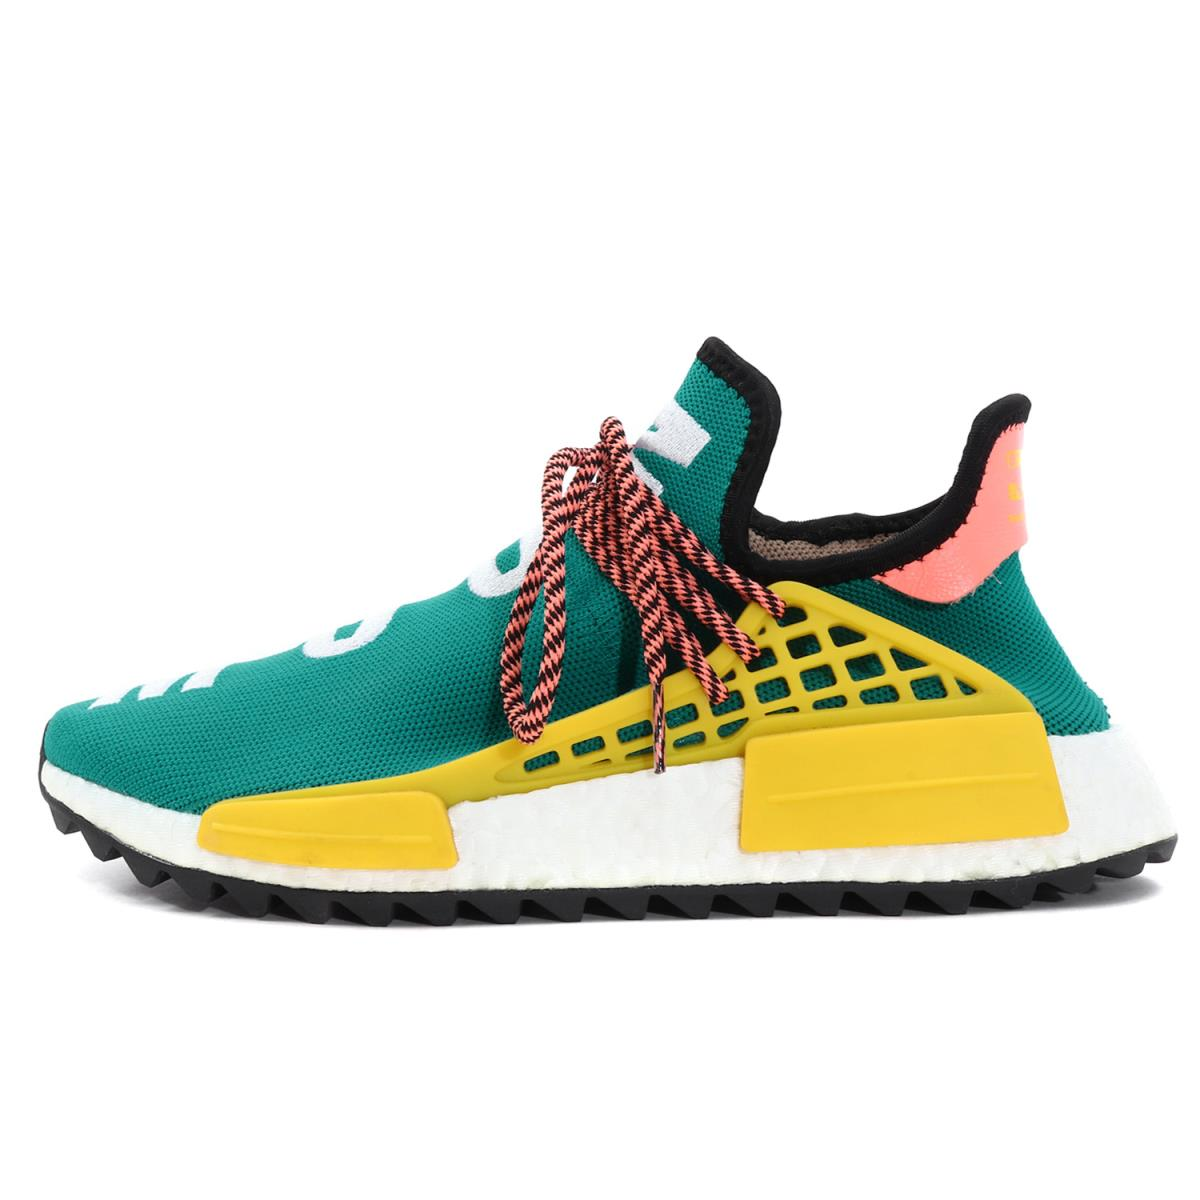 best sneakers 7141a aba5a adidas (Adidas) 17A/W X PHARRELL WILLIAMS PW HUMAN RACE NMD TR (AC7188)  green US7(25cm)